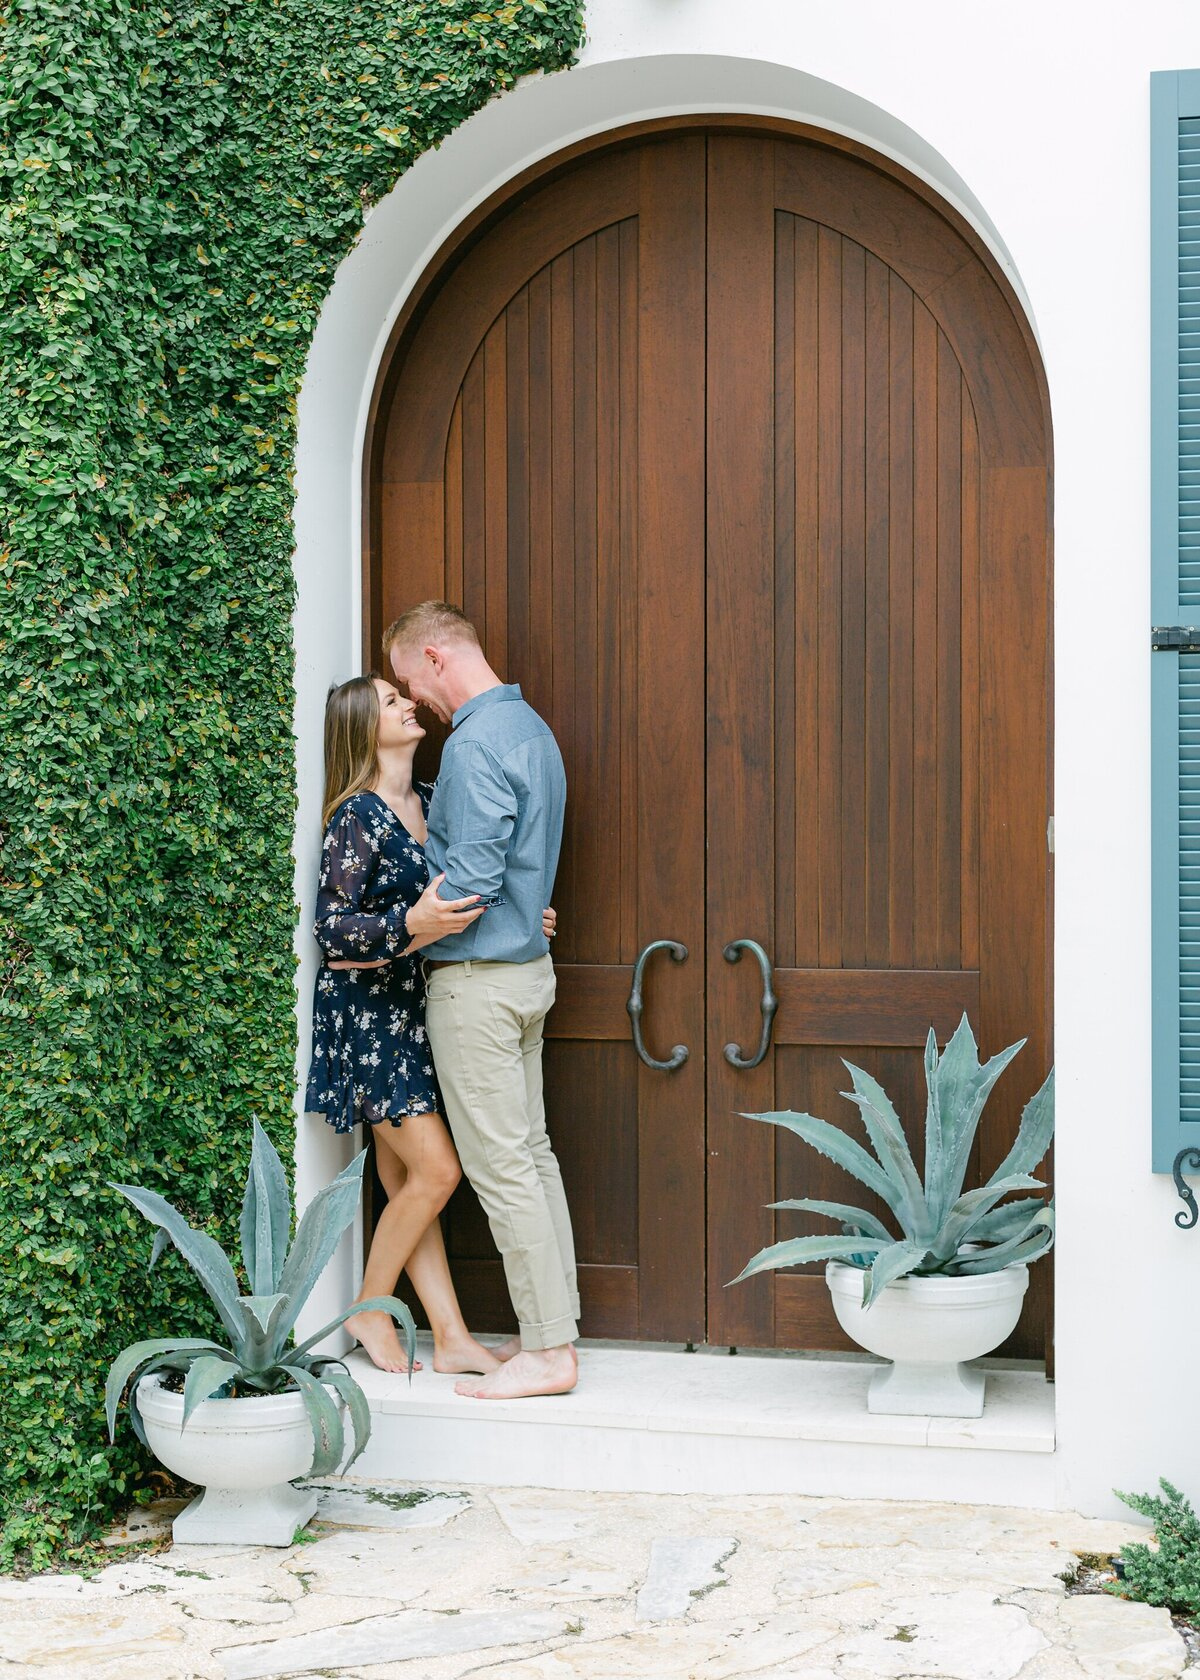 Alys-Rosemary-Beach-Engagement-Photographer_Jessie-Barksdale-Photography_023